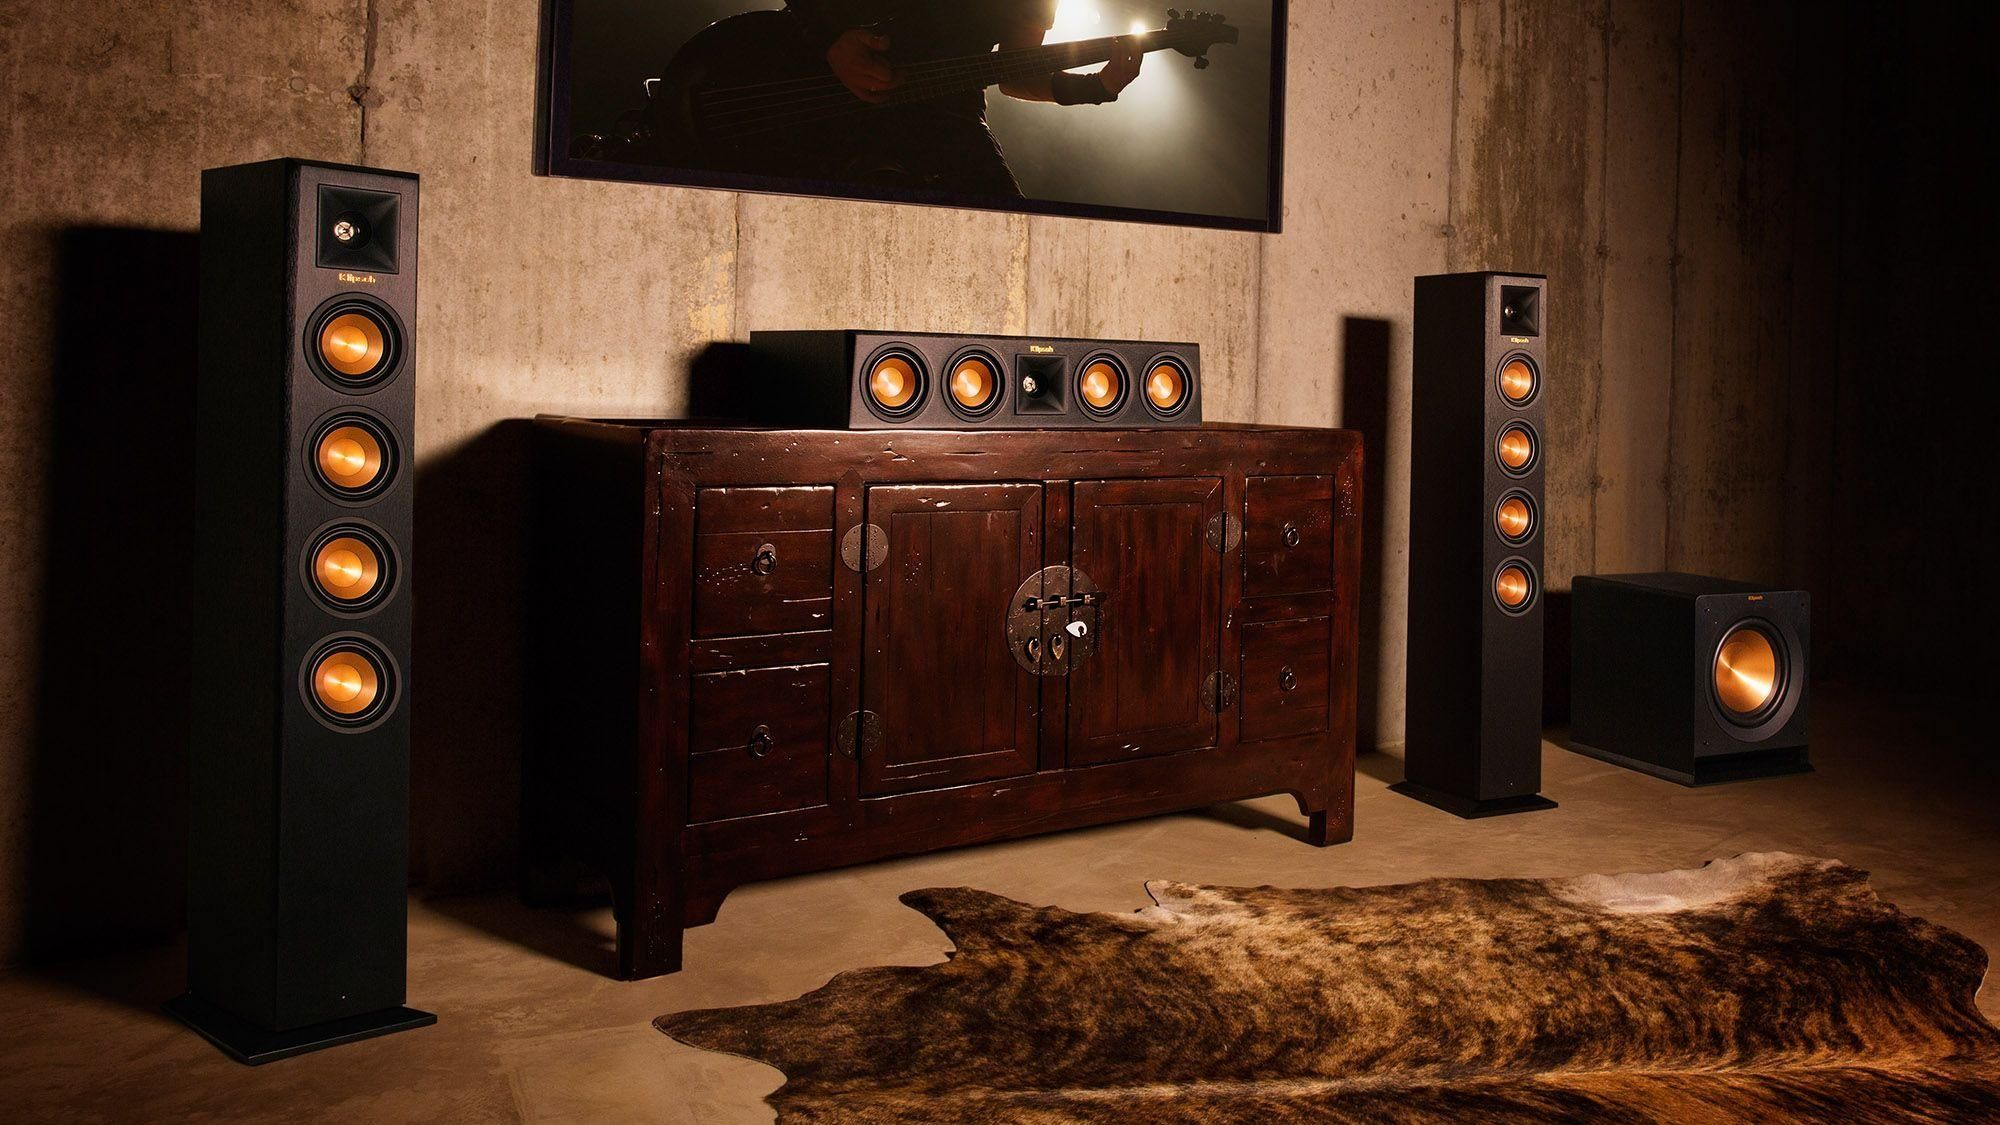 Klipsch wireless speakers flanking a tv and wood cabinet